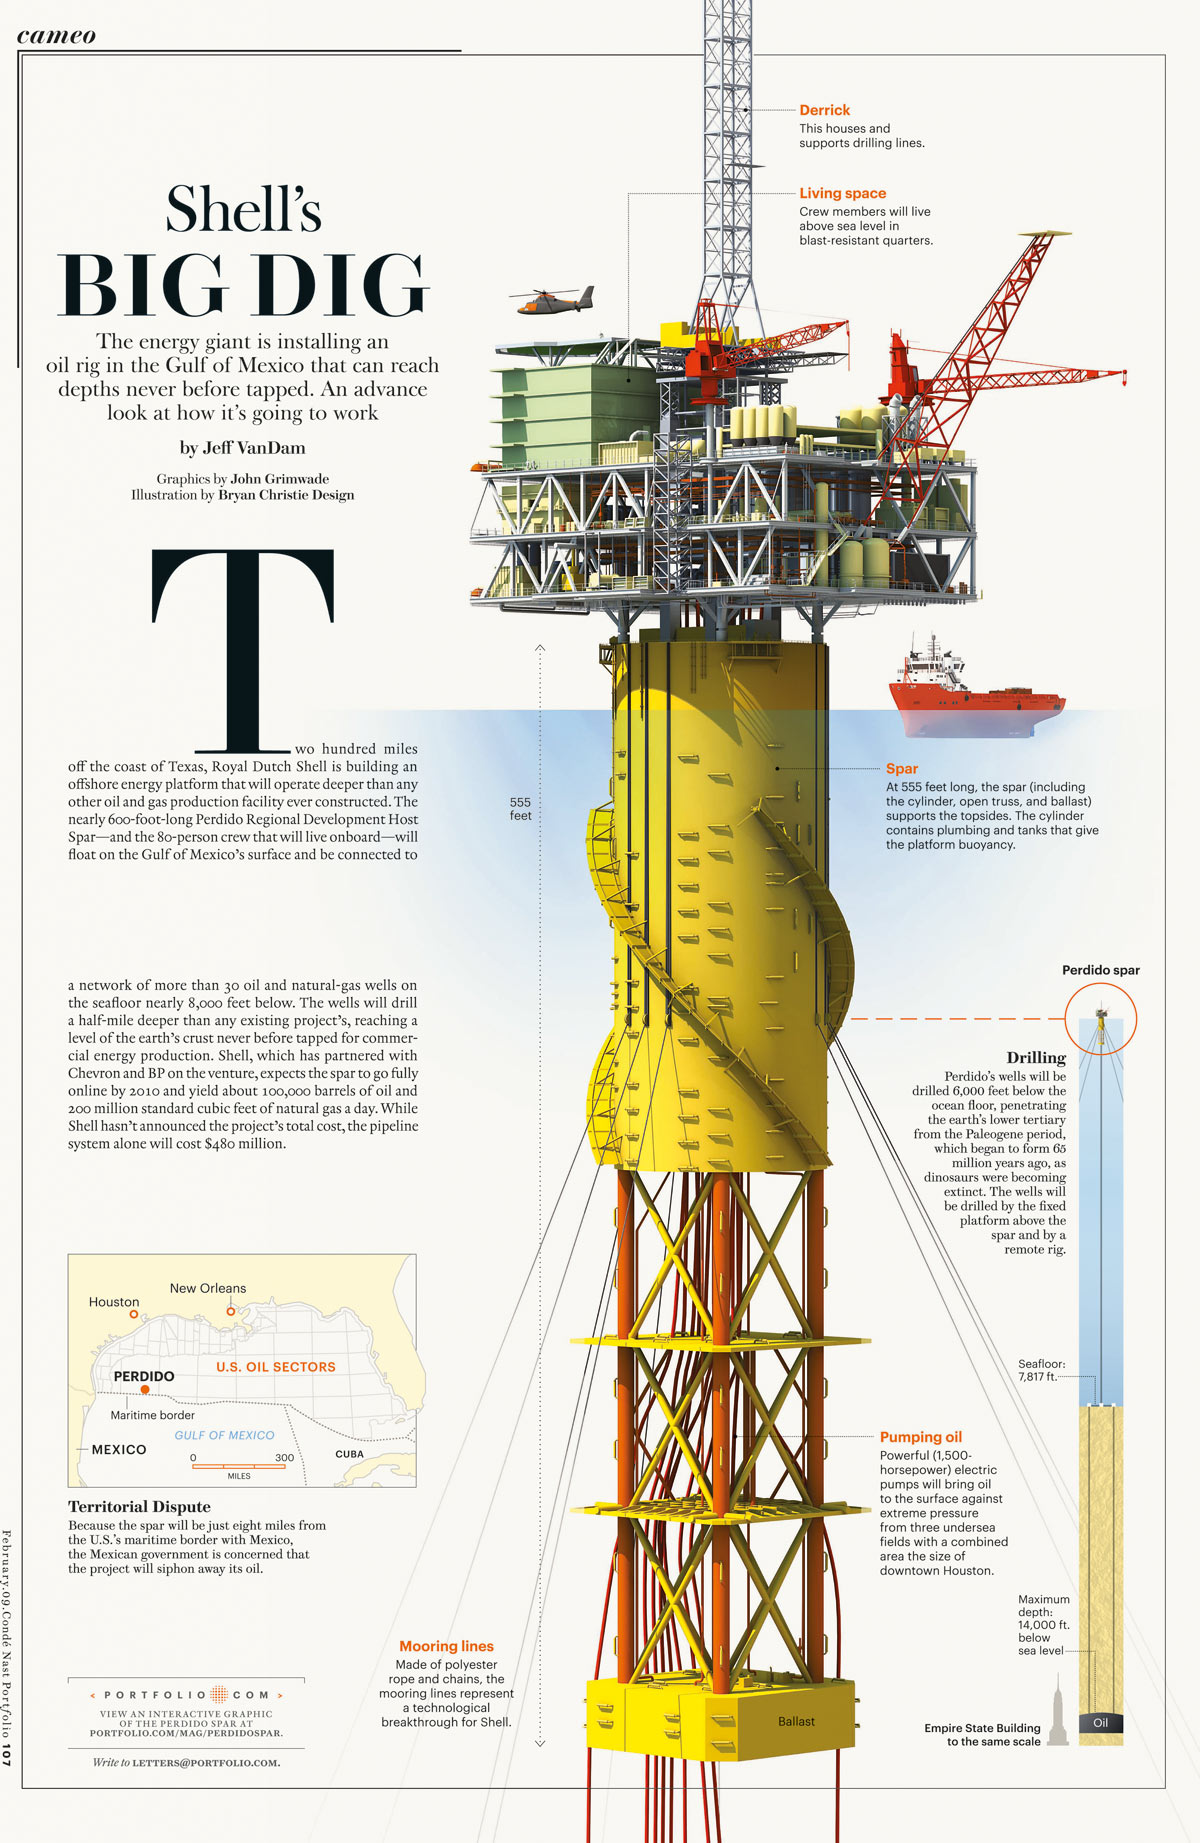 oil rig diagram 1995 mazda protege radio wiring book review information graphics published by taschen  jufa